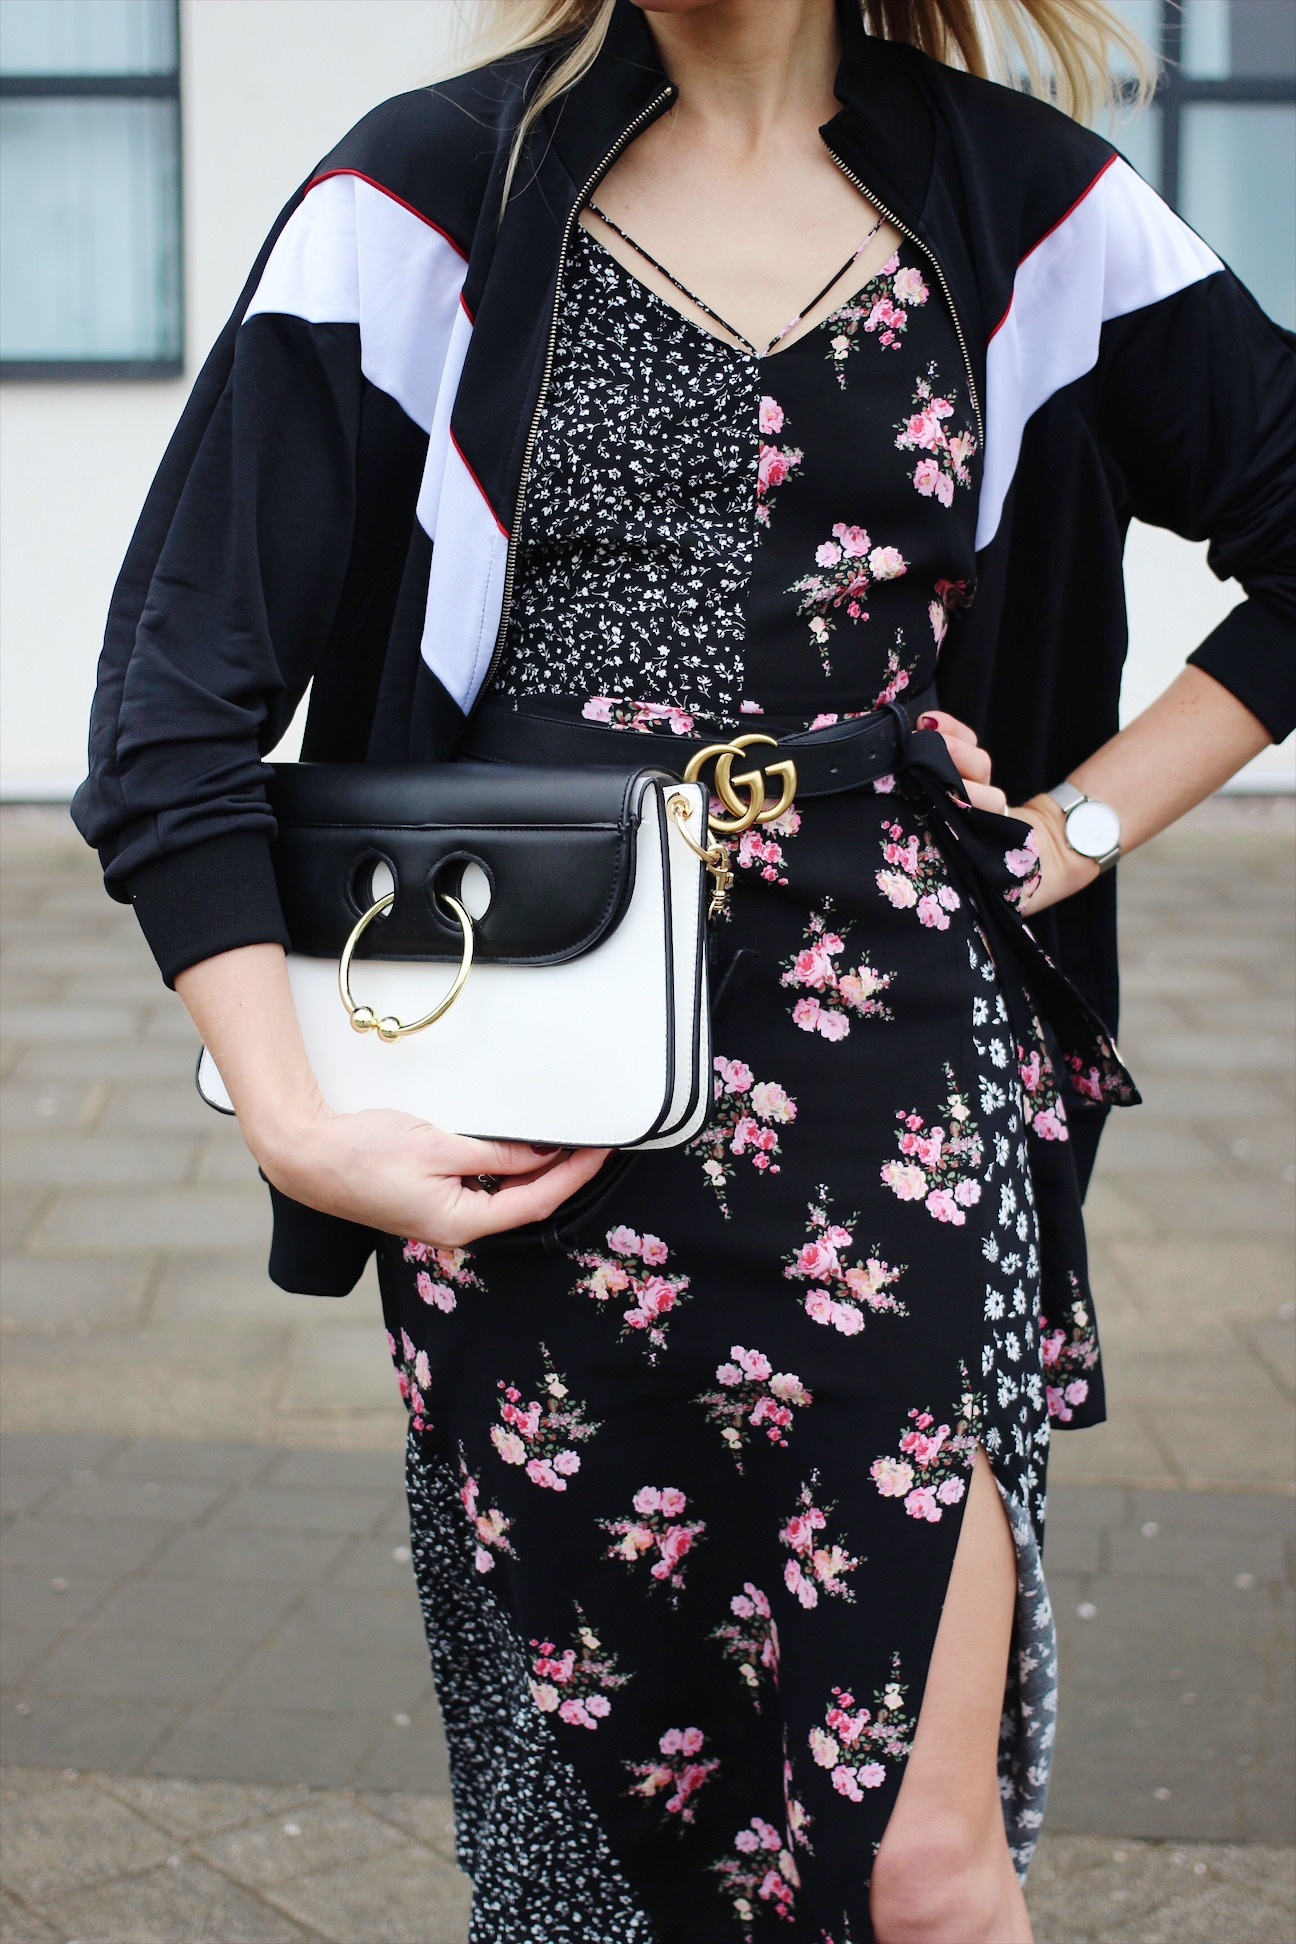 Topshop Floral Dress, Pull and Bear Tracksuit Top and J W Anderson Lookalike handbag